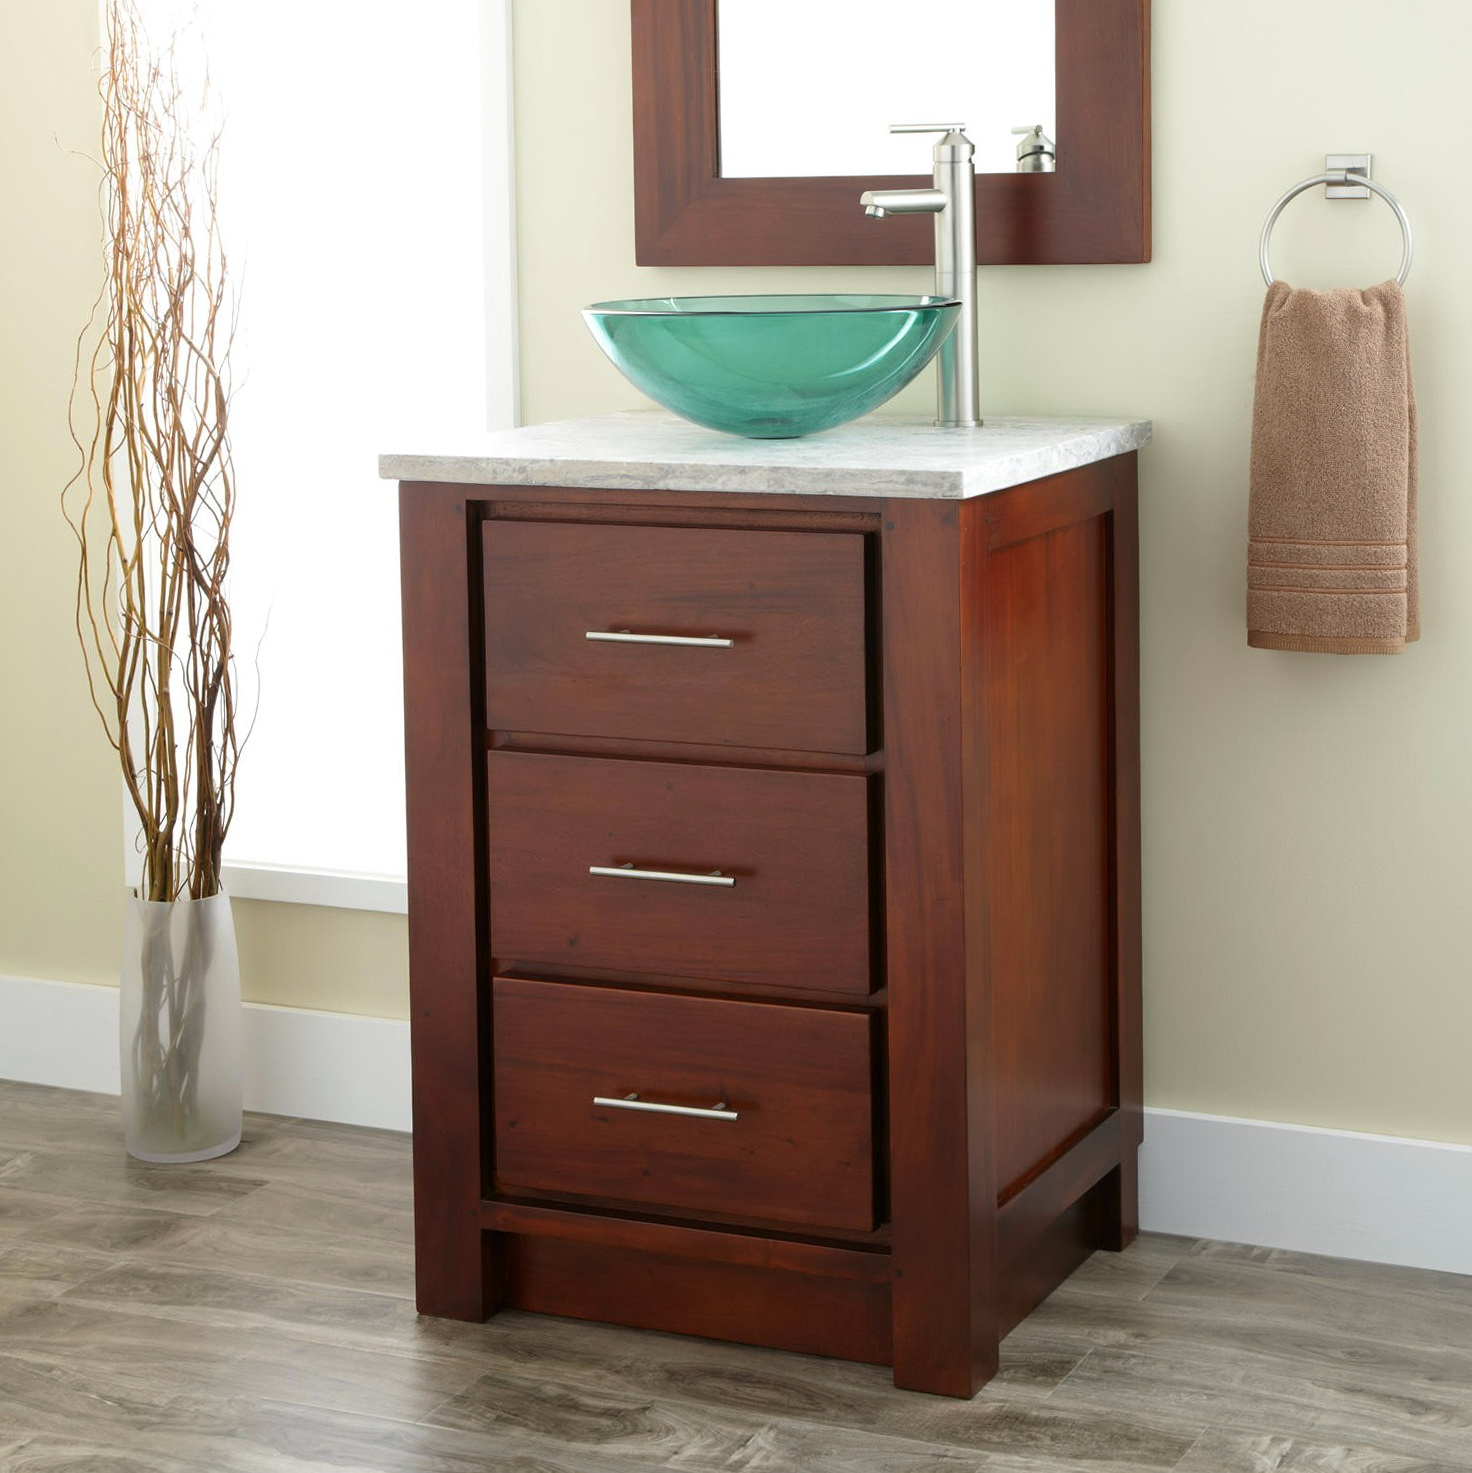 24 Inch Bathroom Vanity Vessel Sink